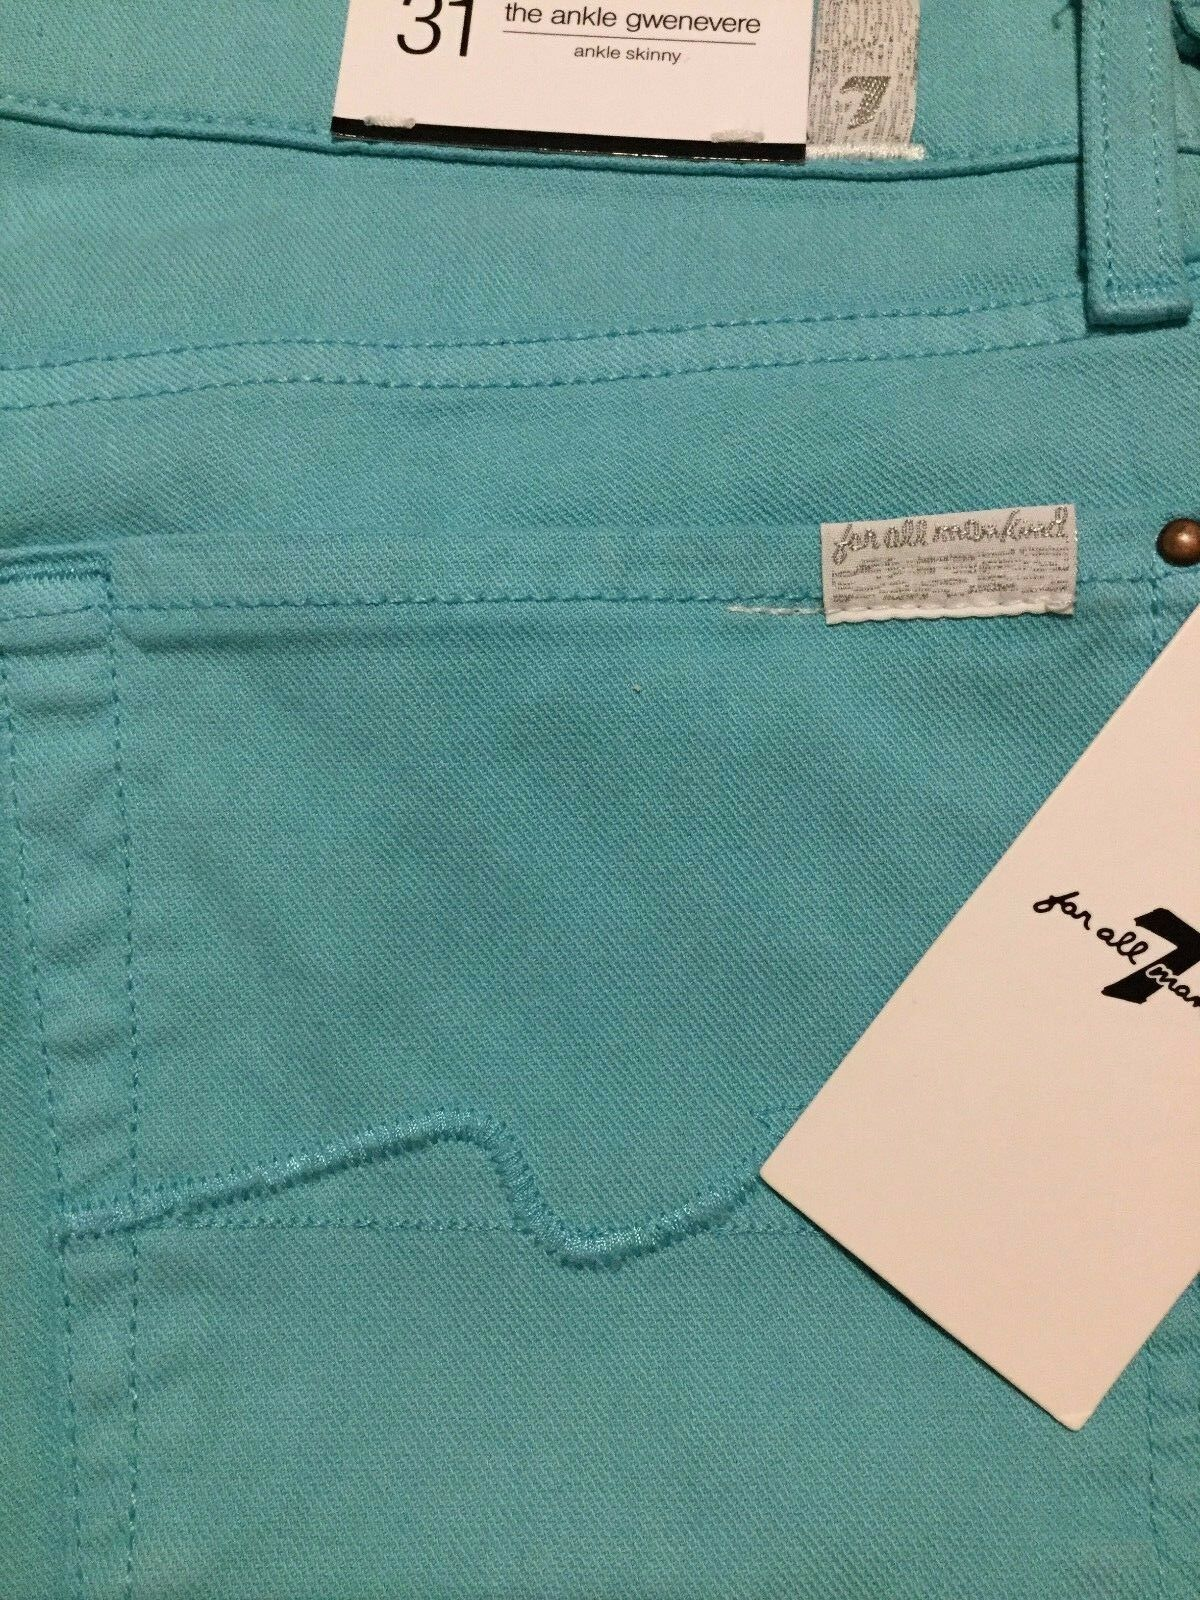 189 NWT 7 FOR ALL MANKIND Sz31 GWENEVERE ANKLE SKINNY STRETCH JEANS SEGN GREEN